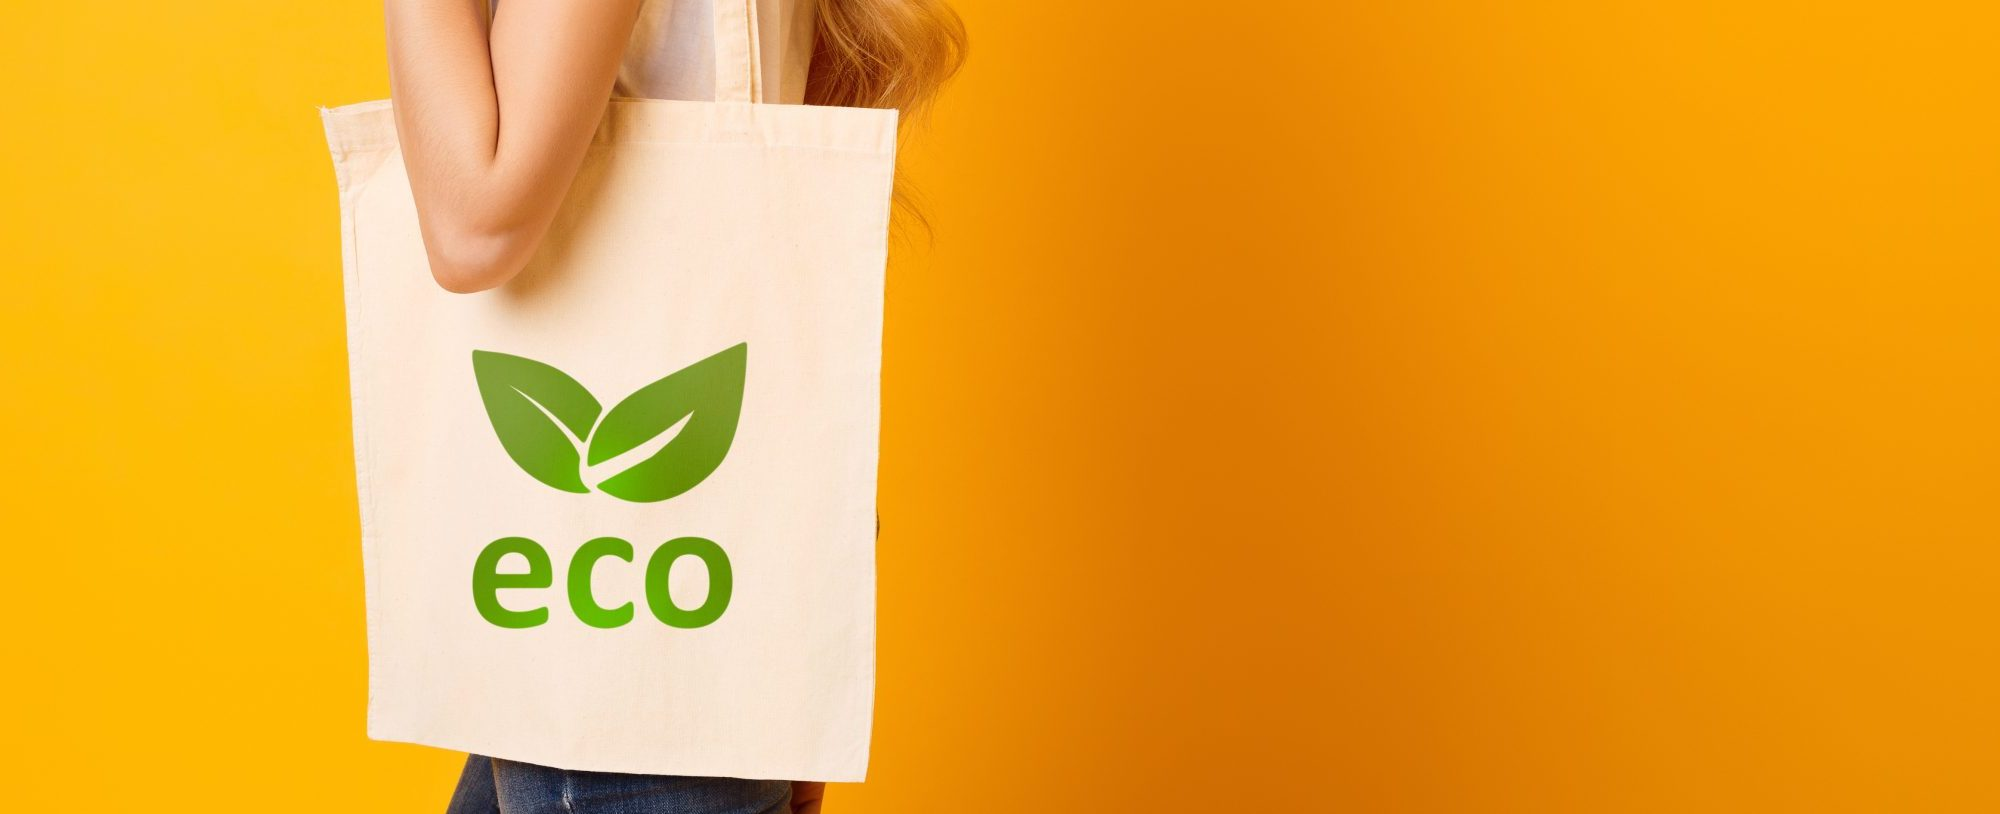 A person is carrying an eco-friendly fabric shopping bag with a green leaf logo stating 'eco'. The person is standing behind a bright solid orange background.